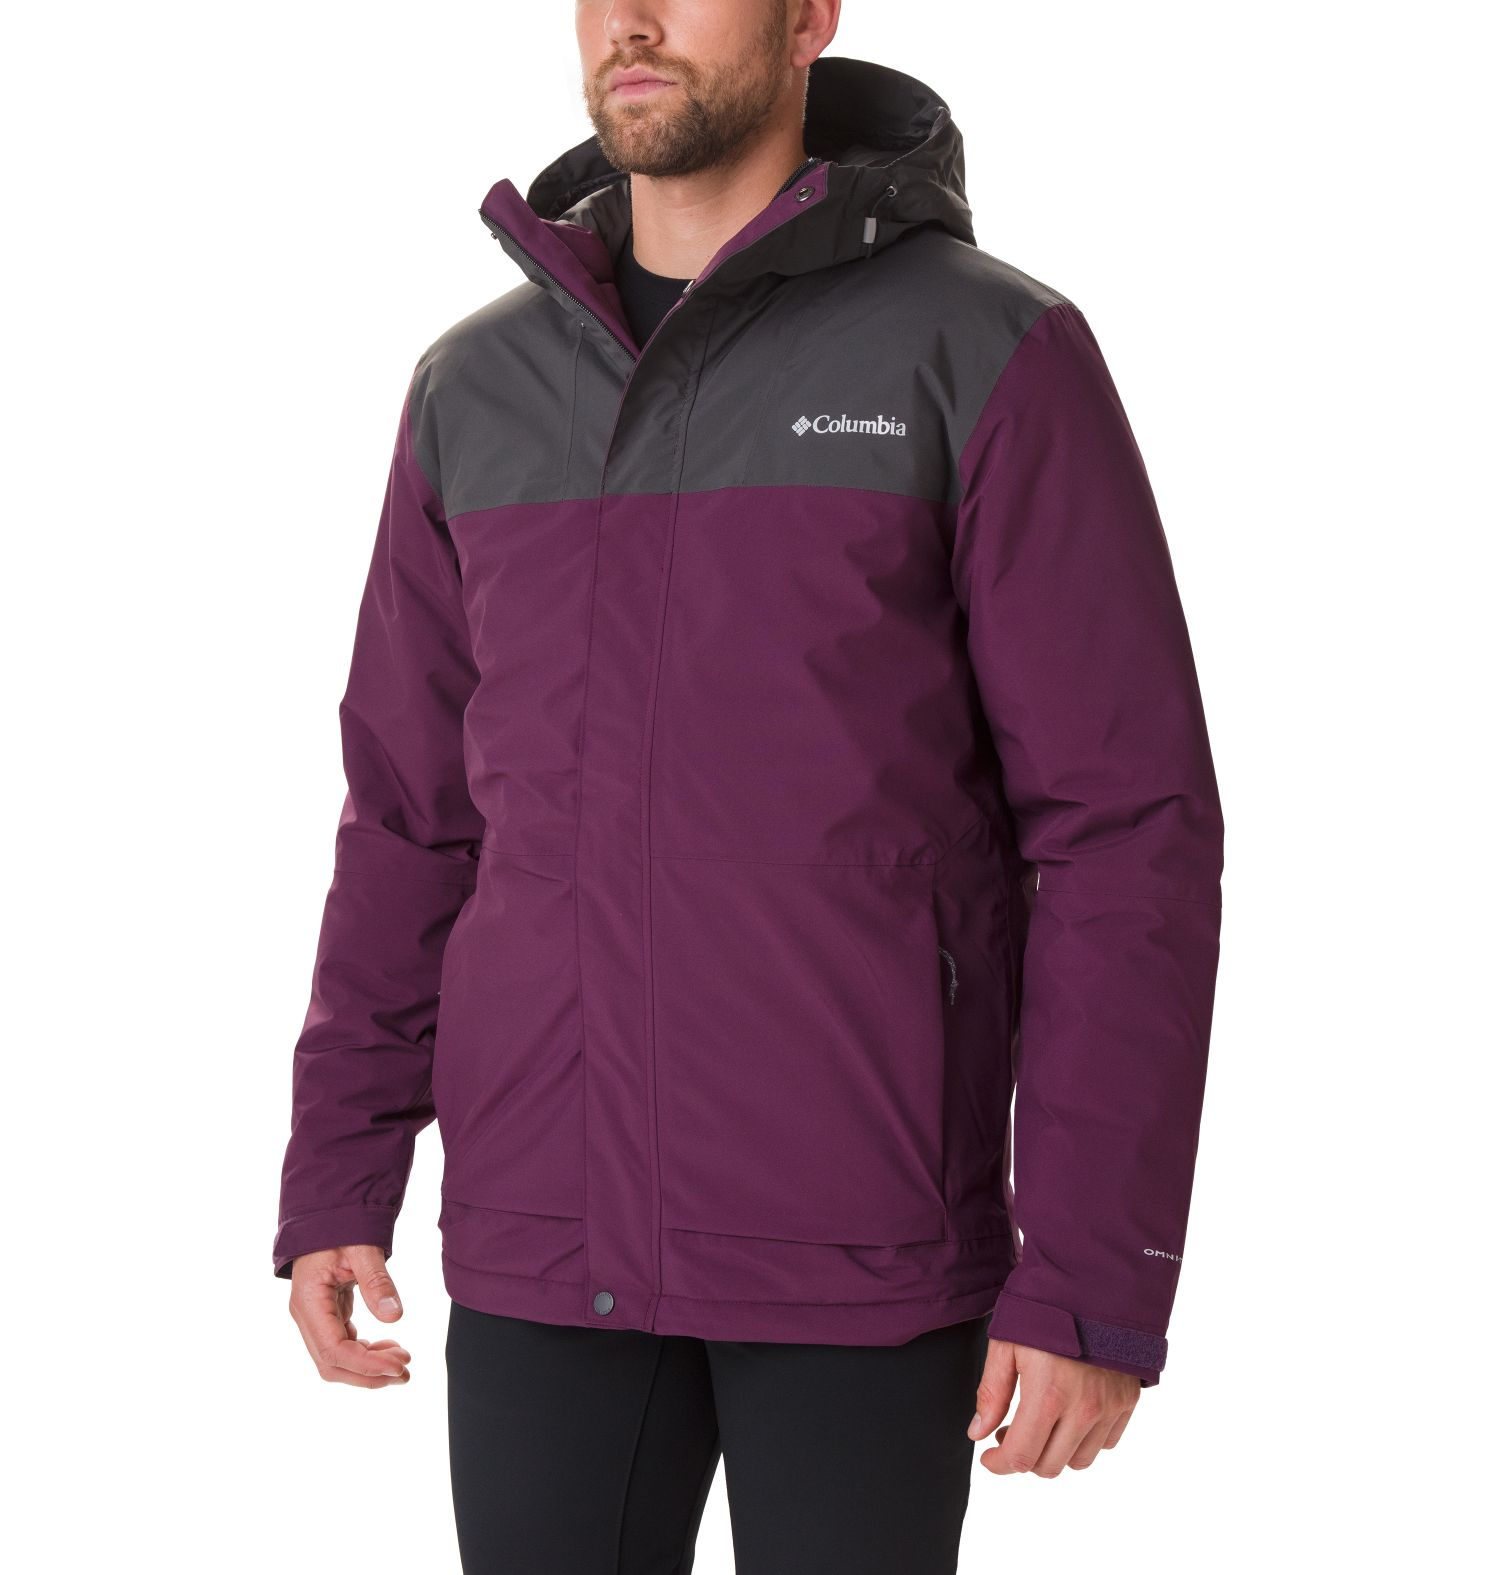 ABRIGO HORIZON EXPLORER INSULATED 100%POLYESTER  Omni-TECH Omni-HEAT BLACK CHERRY/SHARK